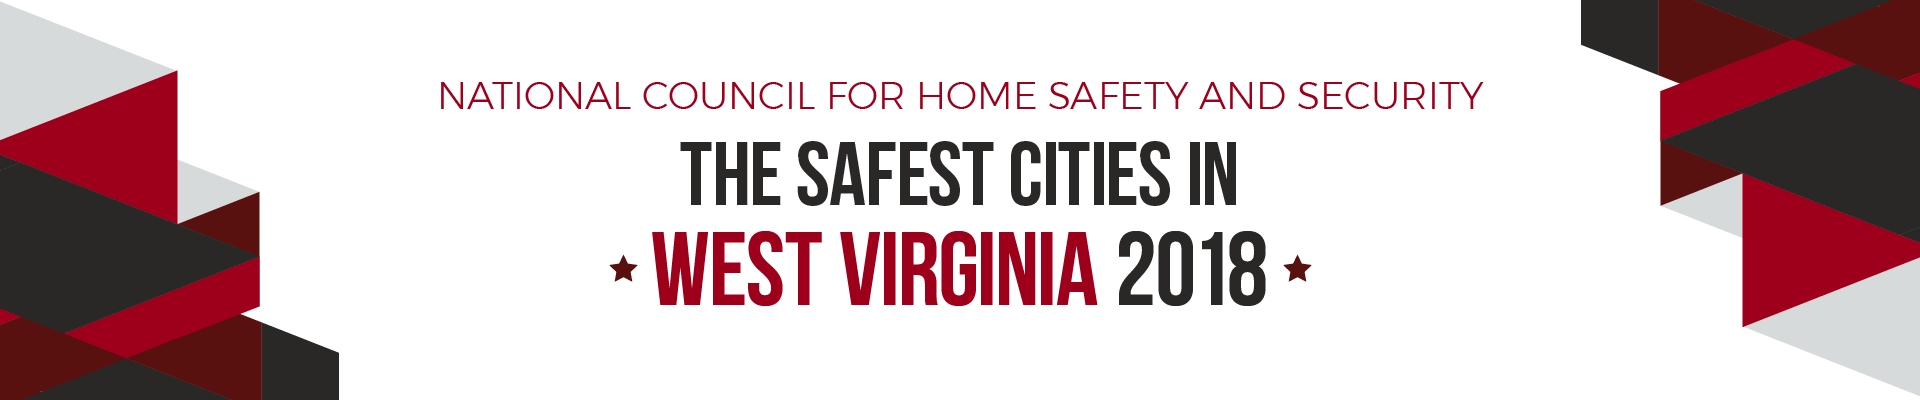 west virginia safe cities 2018